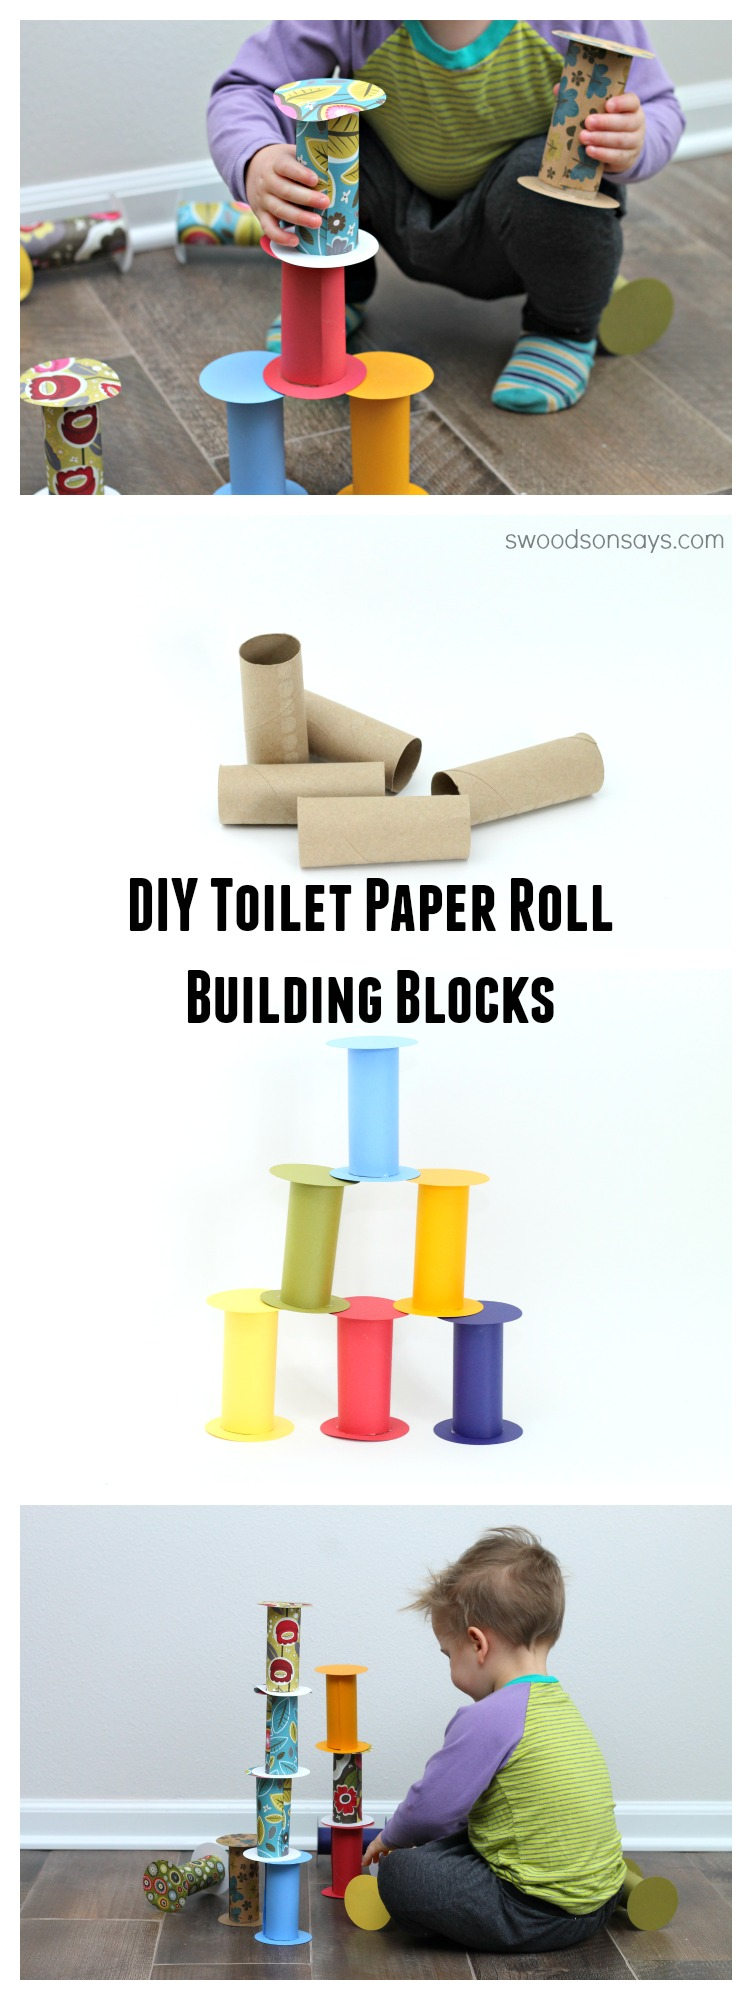 Toilet Paper Roll Toy DIY